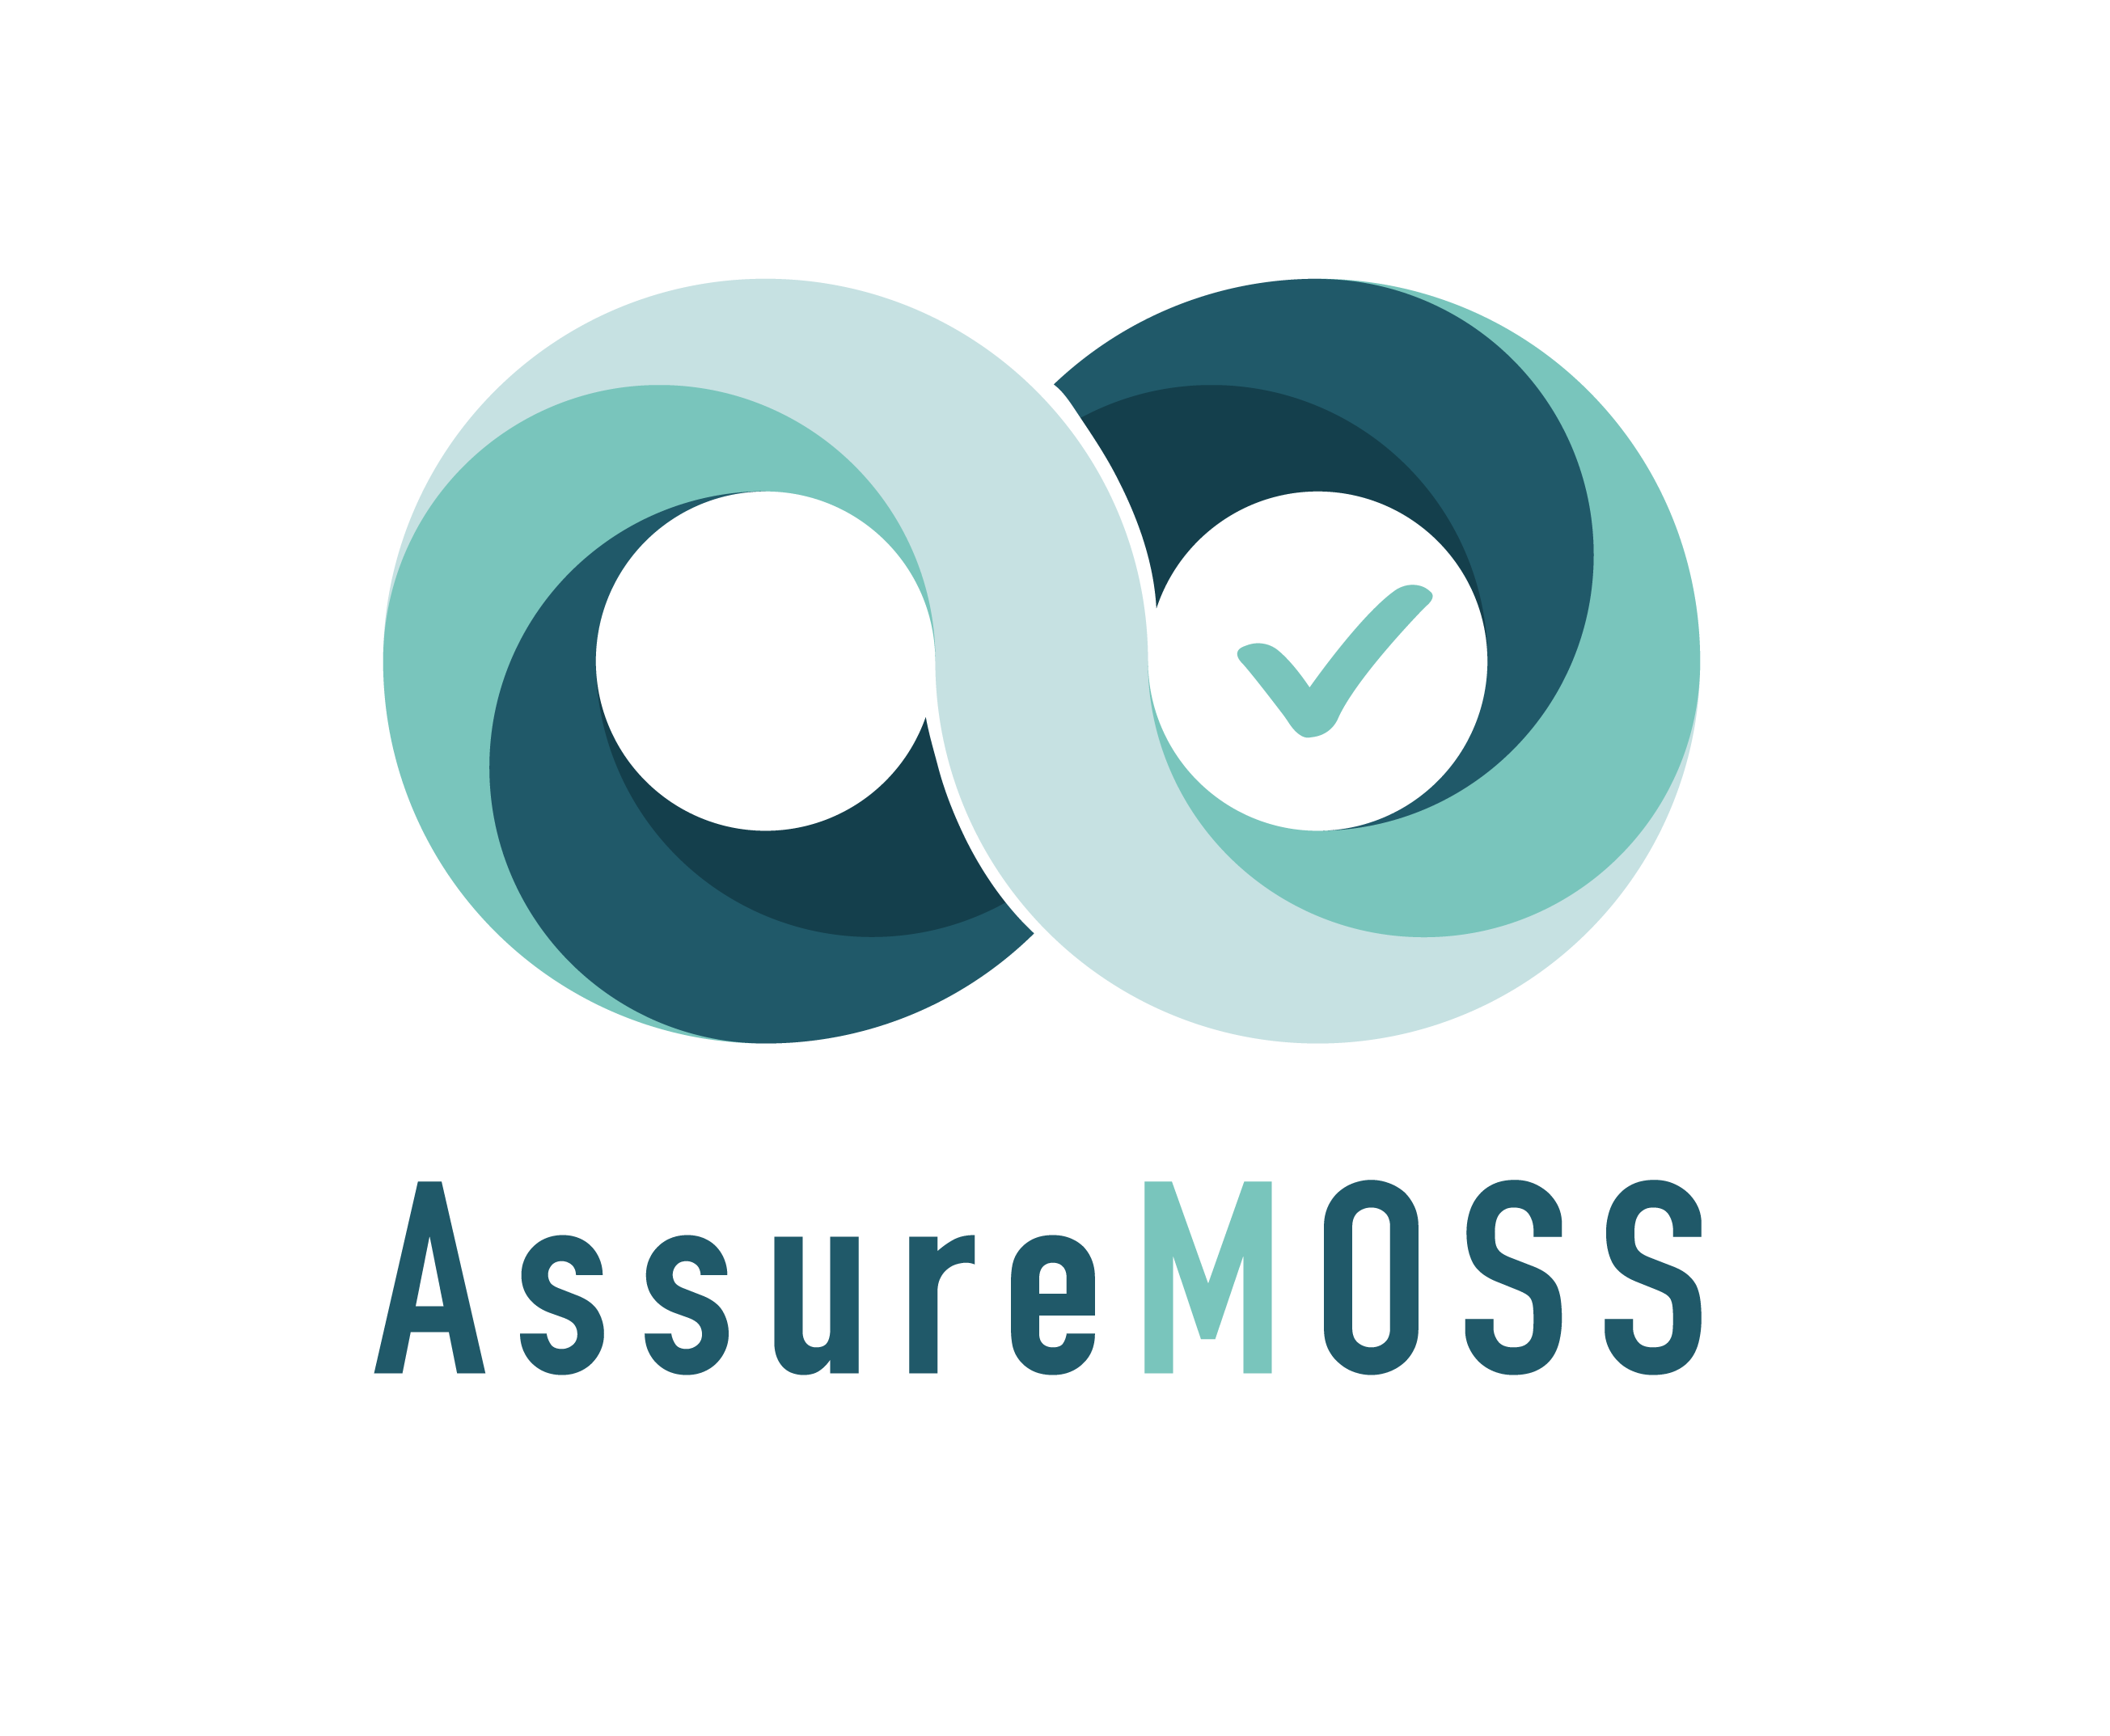 AssureMOSS logo